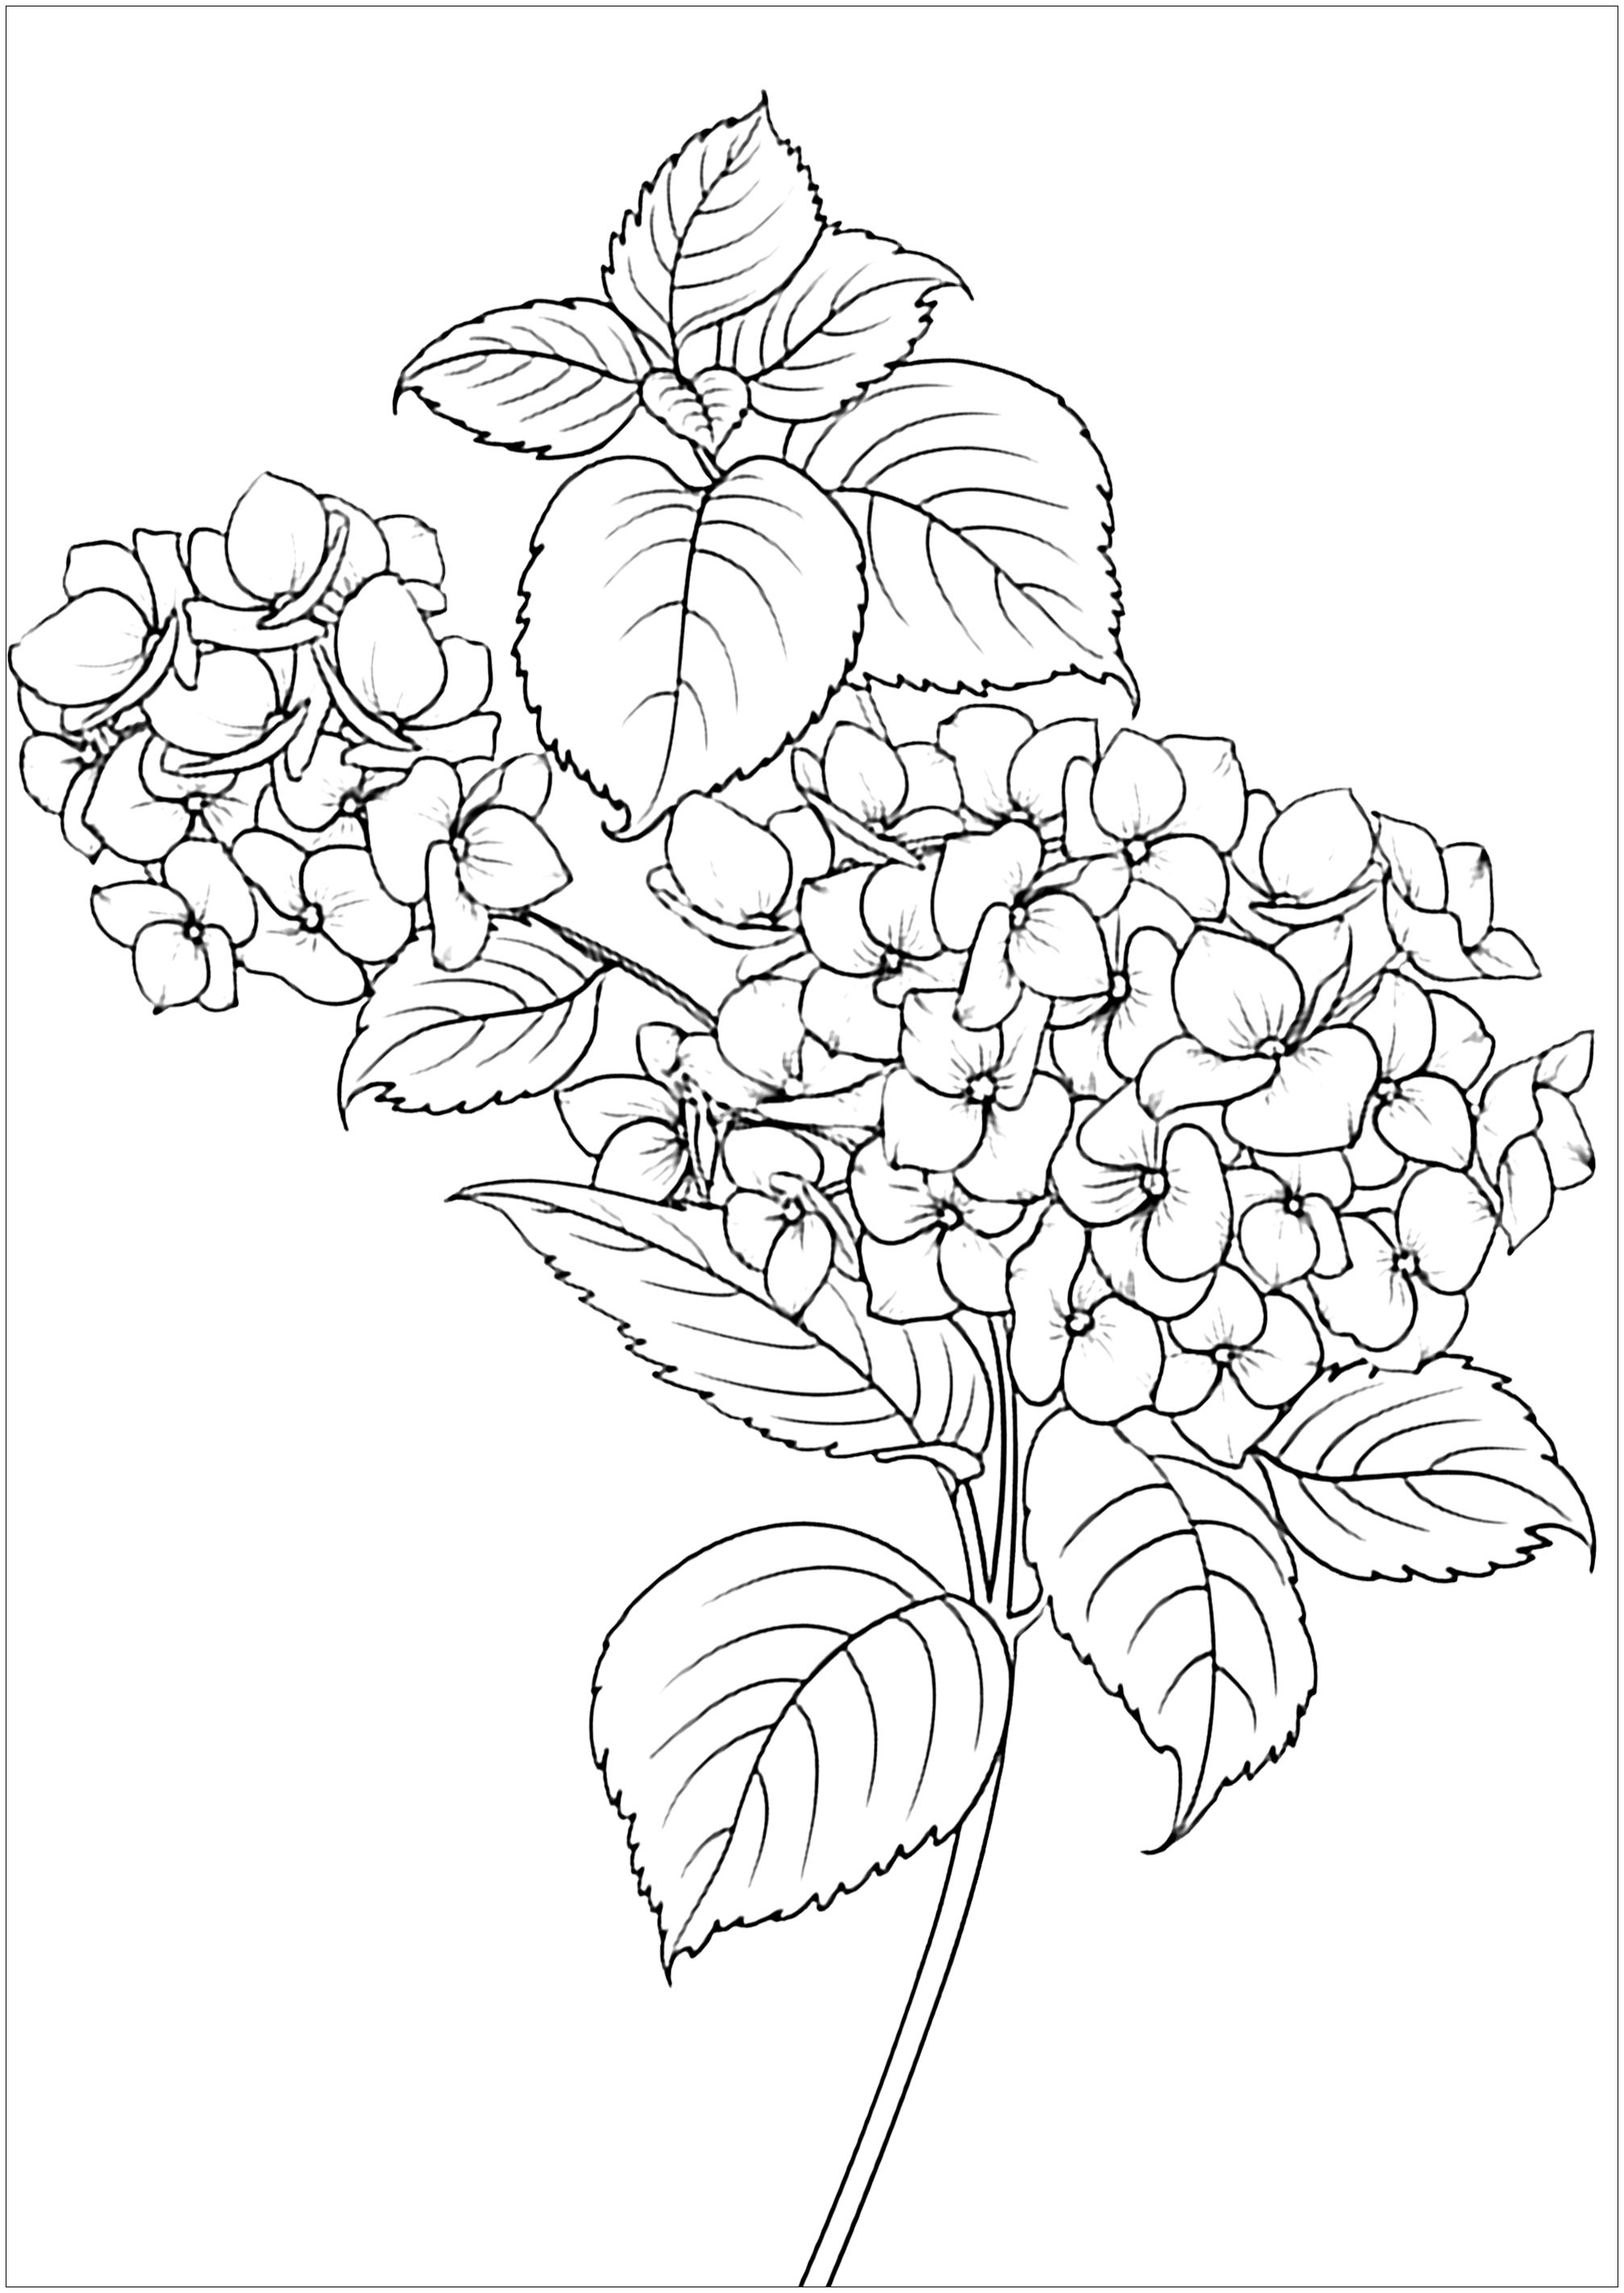 Simple coloring page with elegant flowers and leaves